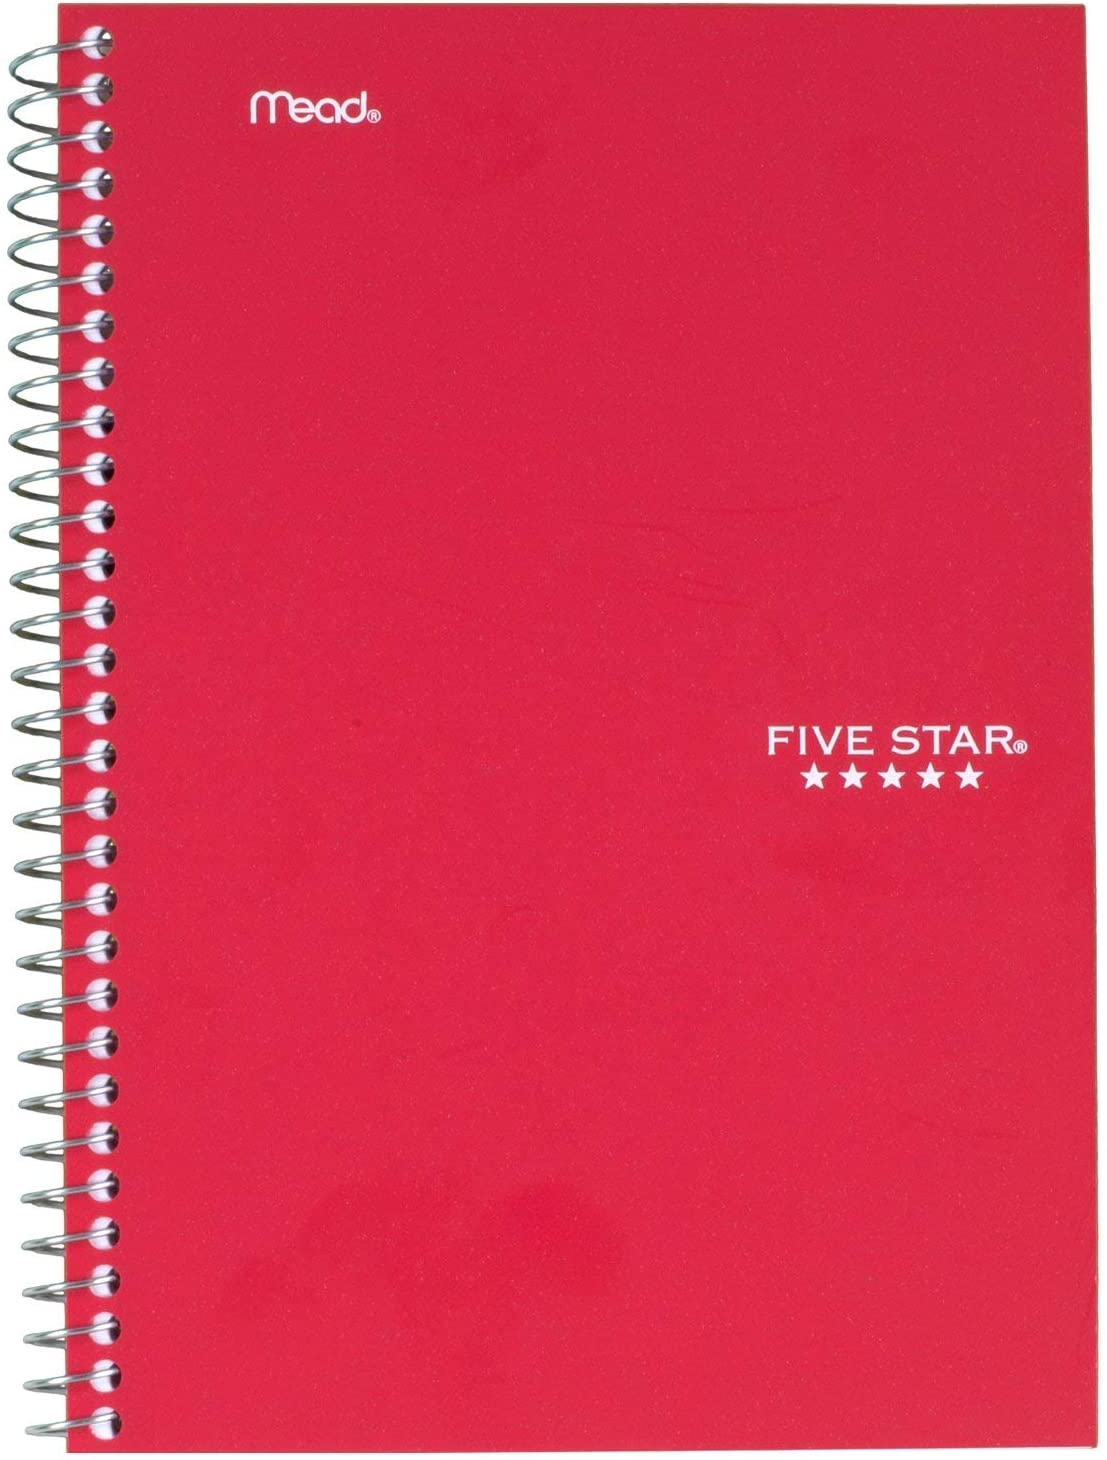 """Five Star Spiral Notebook, 2 Subject, College Ruled Paper, 100 sheets, 9-1/2"""" x 6"""", Red (72281)"""